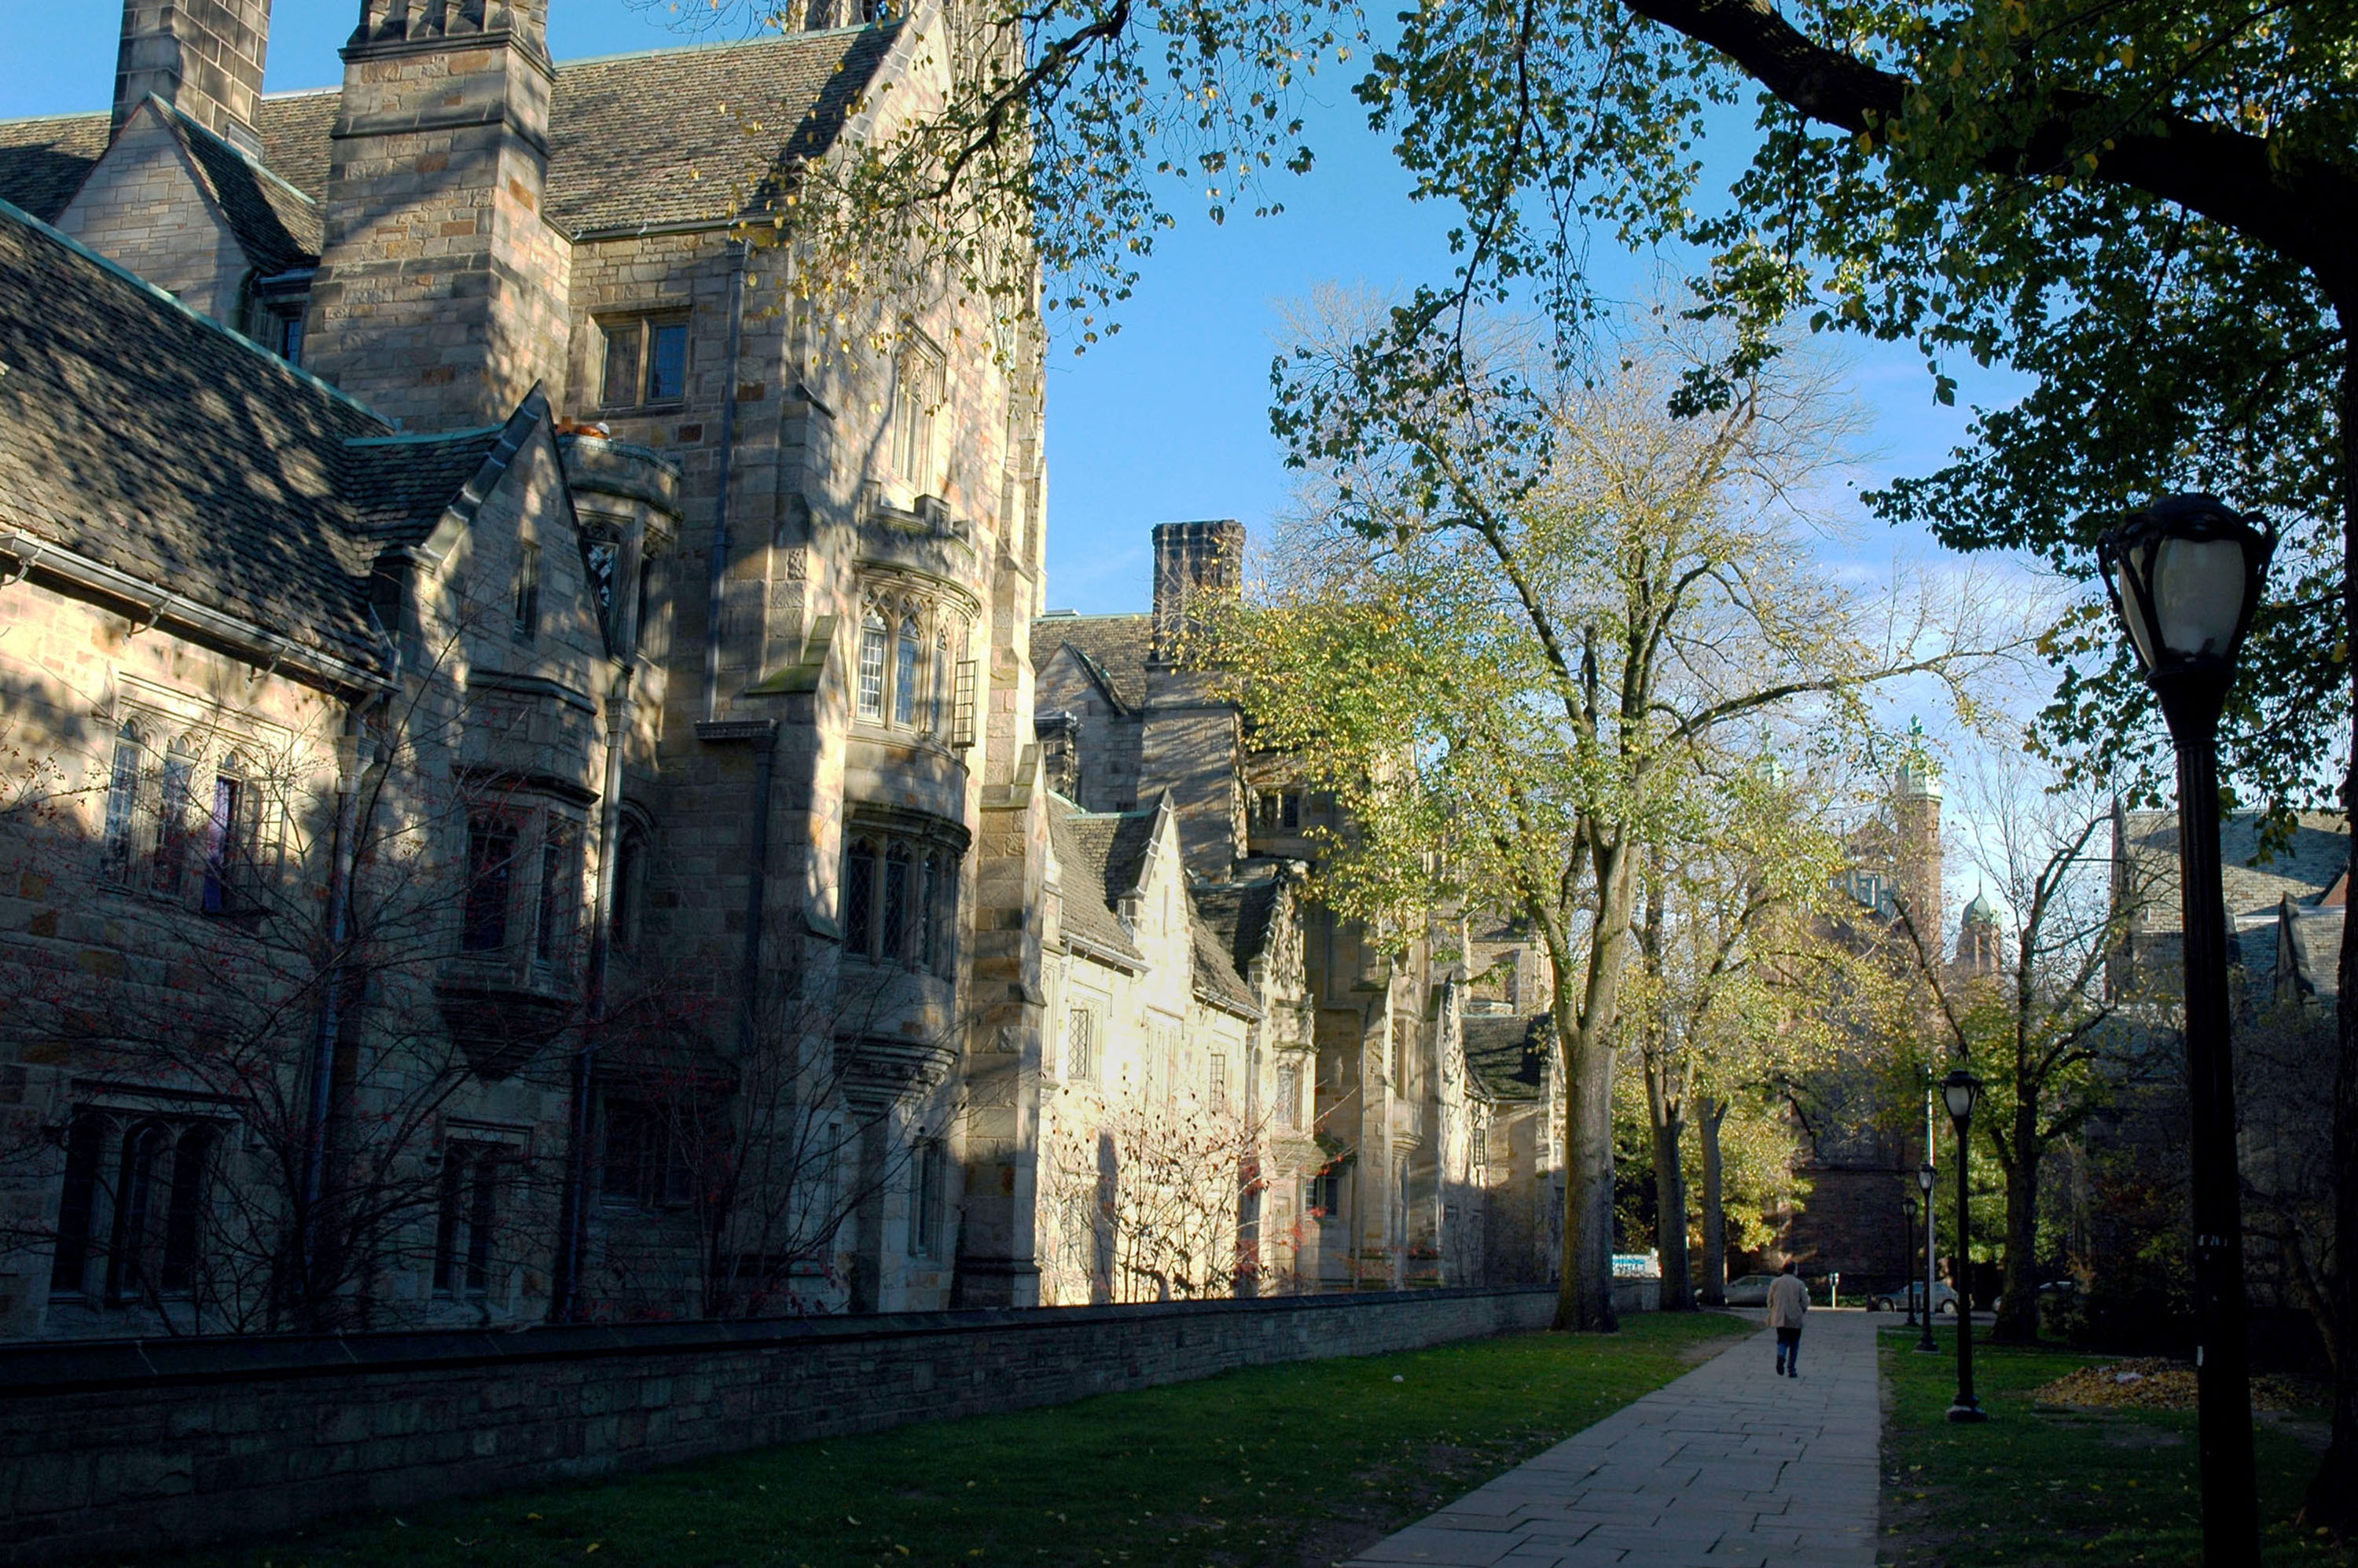 What steps should I take to be accepted in Harvard,Yale, exc.?